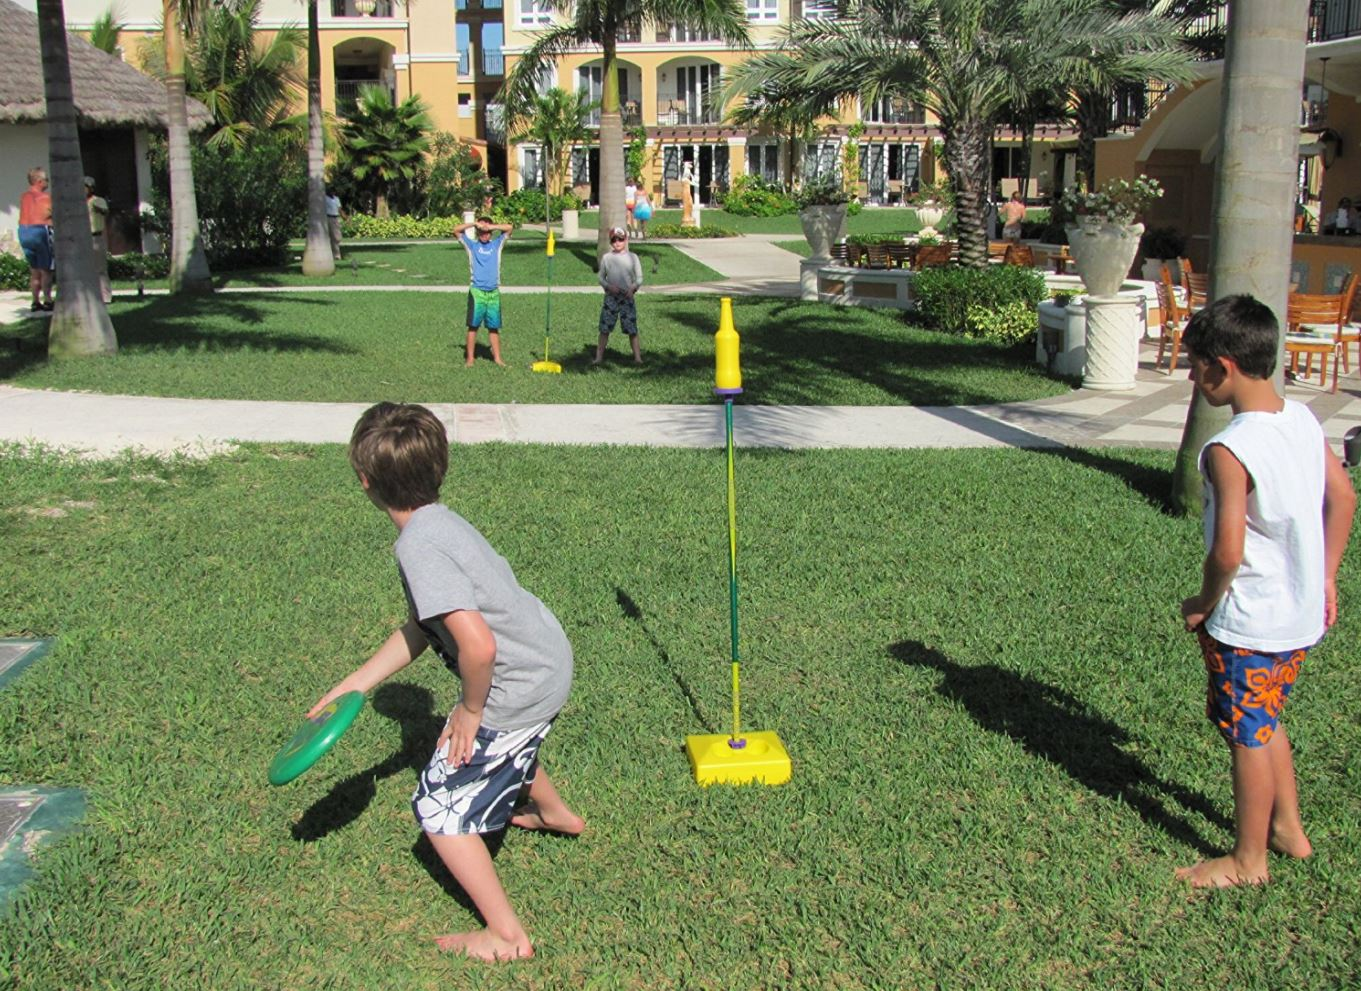 Frisbee Bottle Battle Game - Party Rentals - Pompano Beach, FL